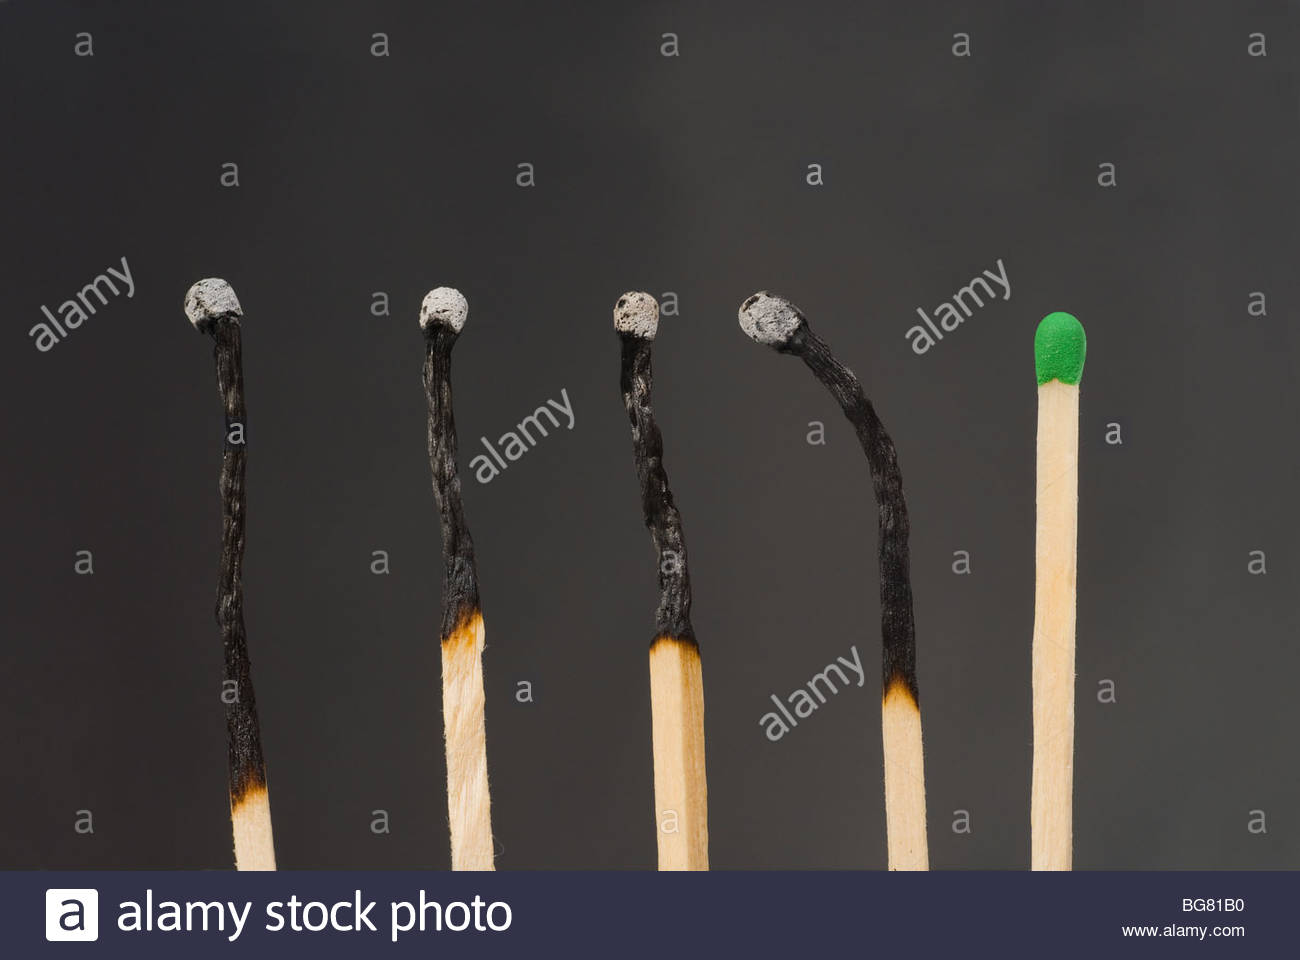 Close up shot of matches on black - Stock Image